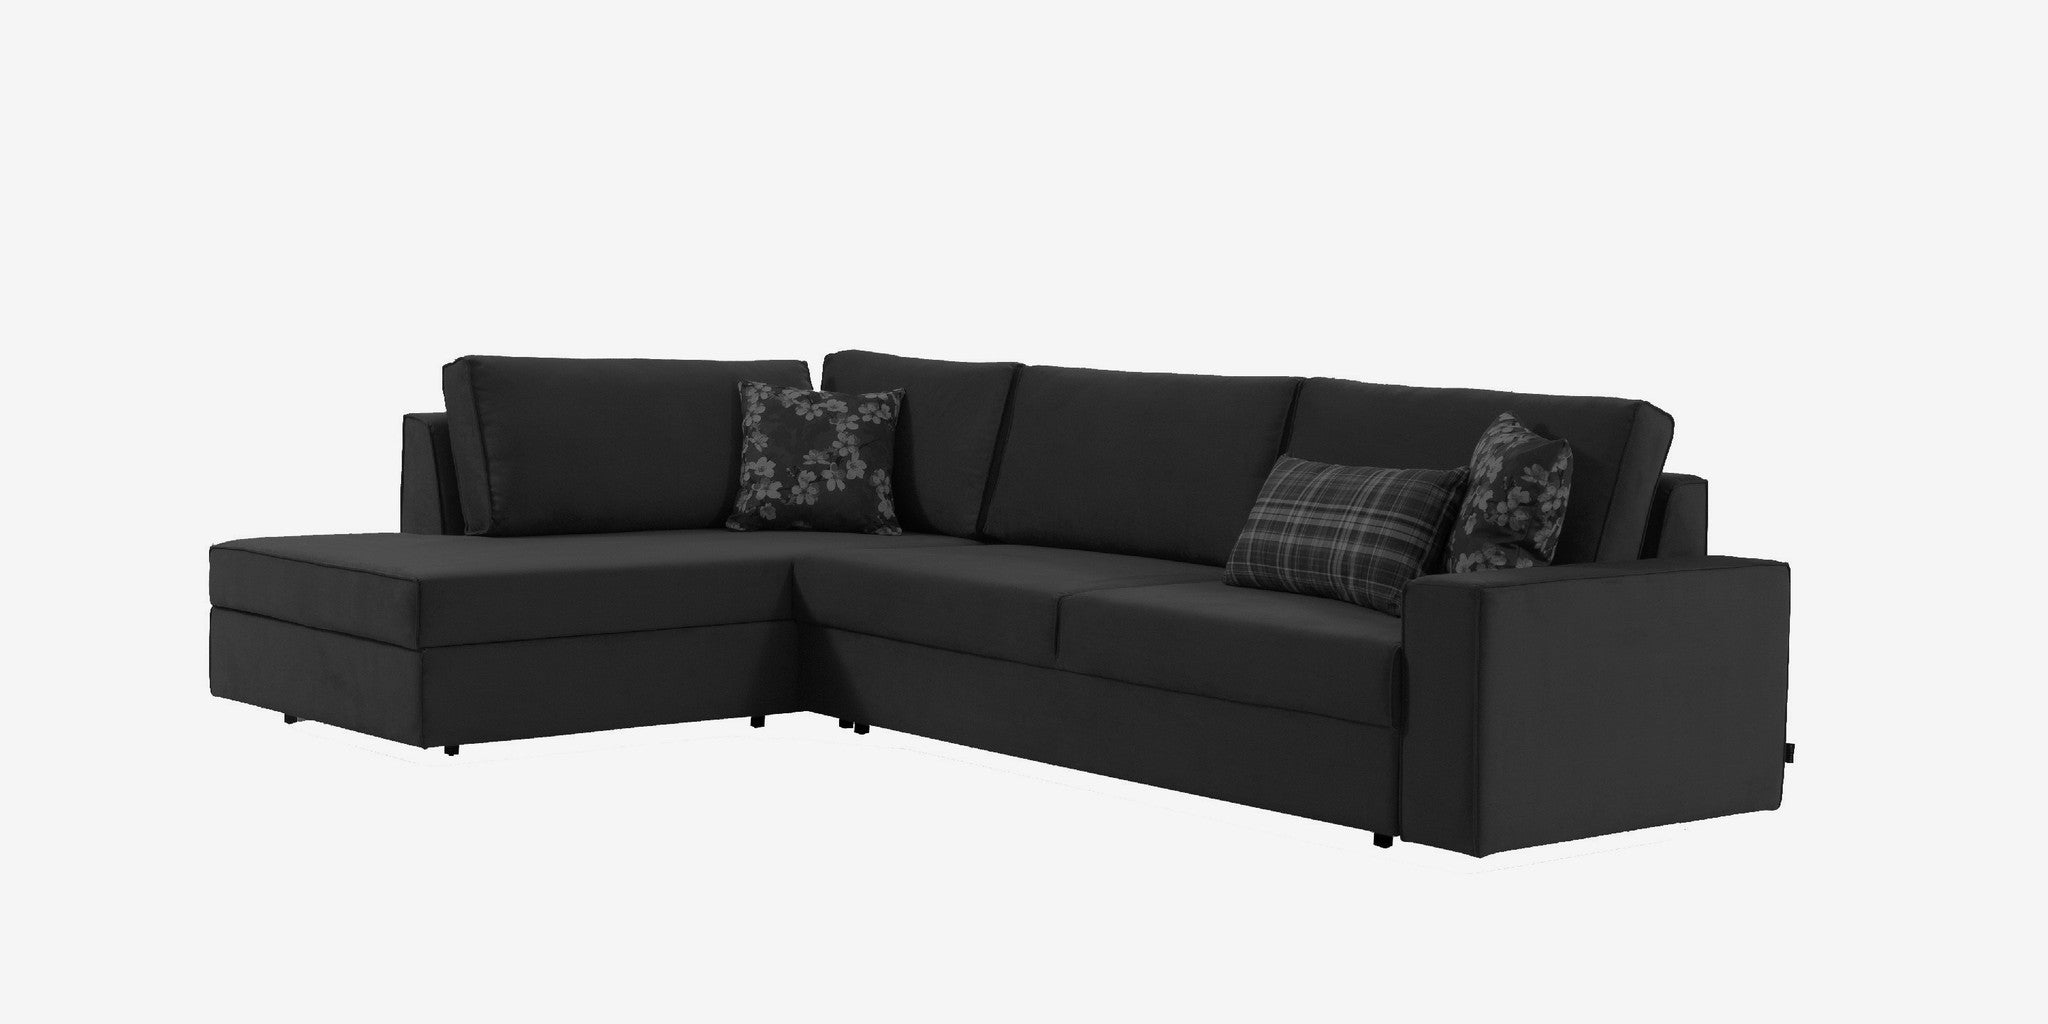 Melbourne Left Sectional Sofa The Smart Sofa